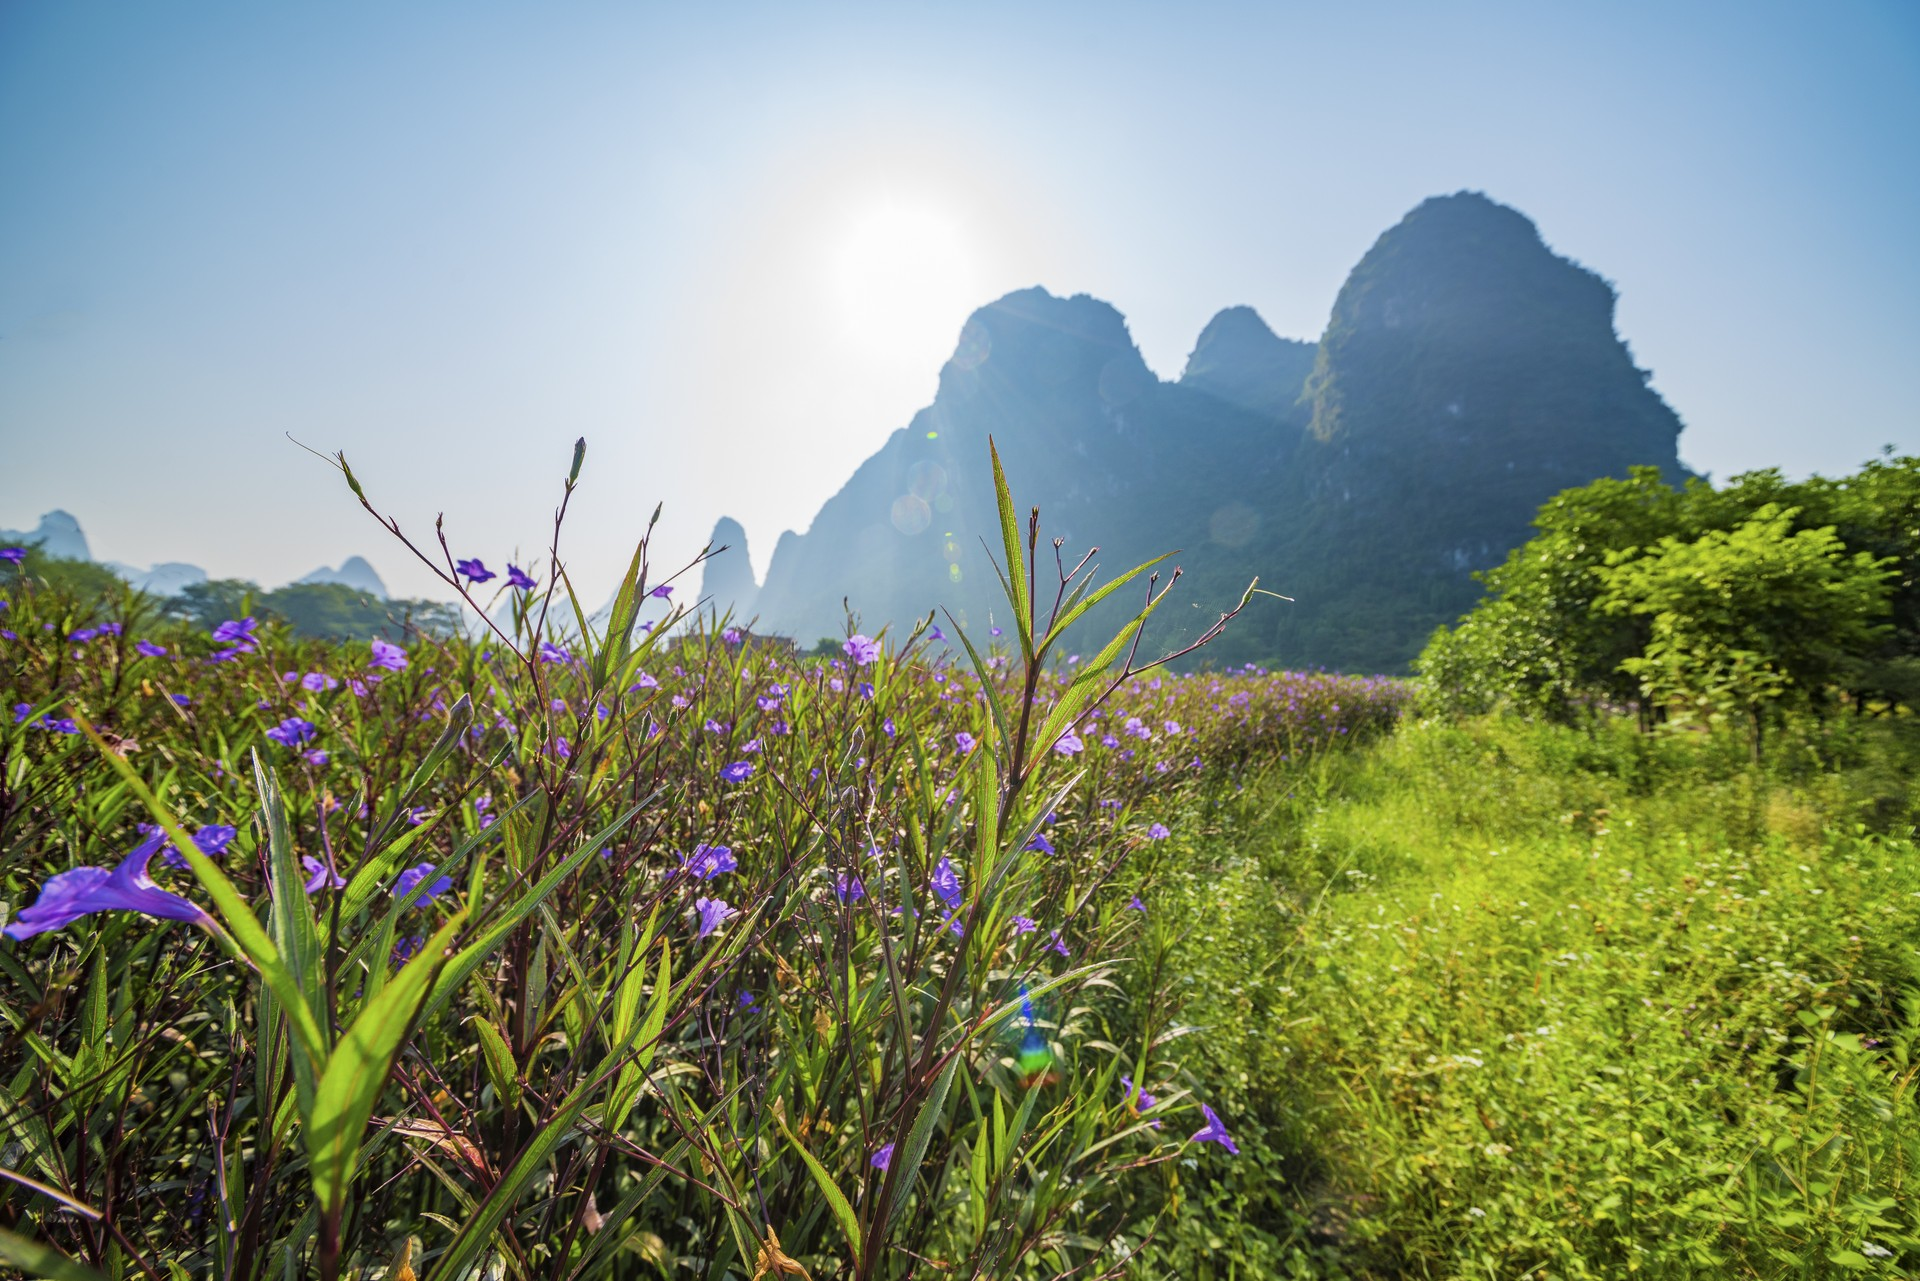 Wild flowers in Yangshuo, China